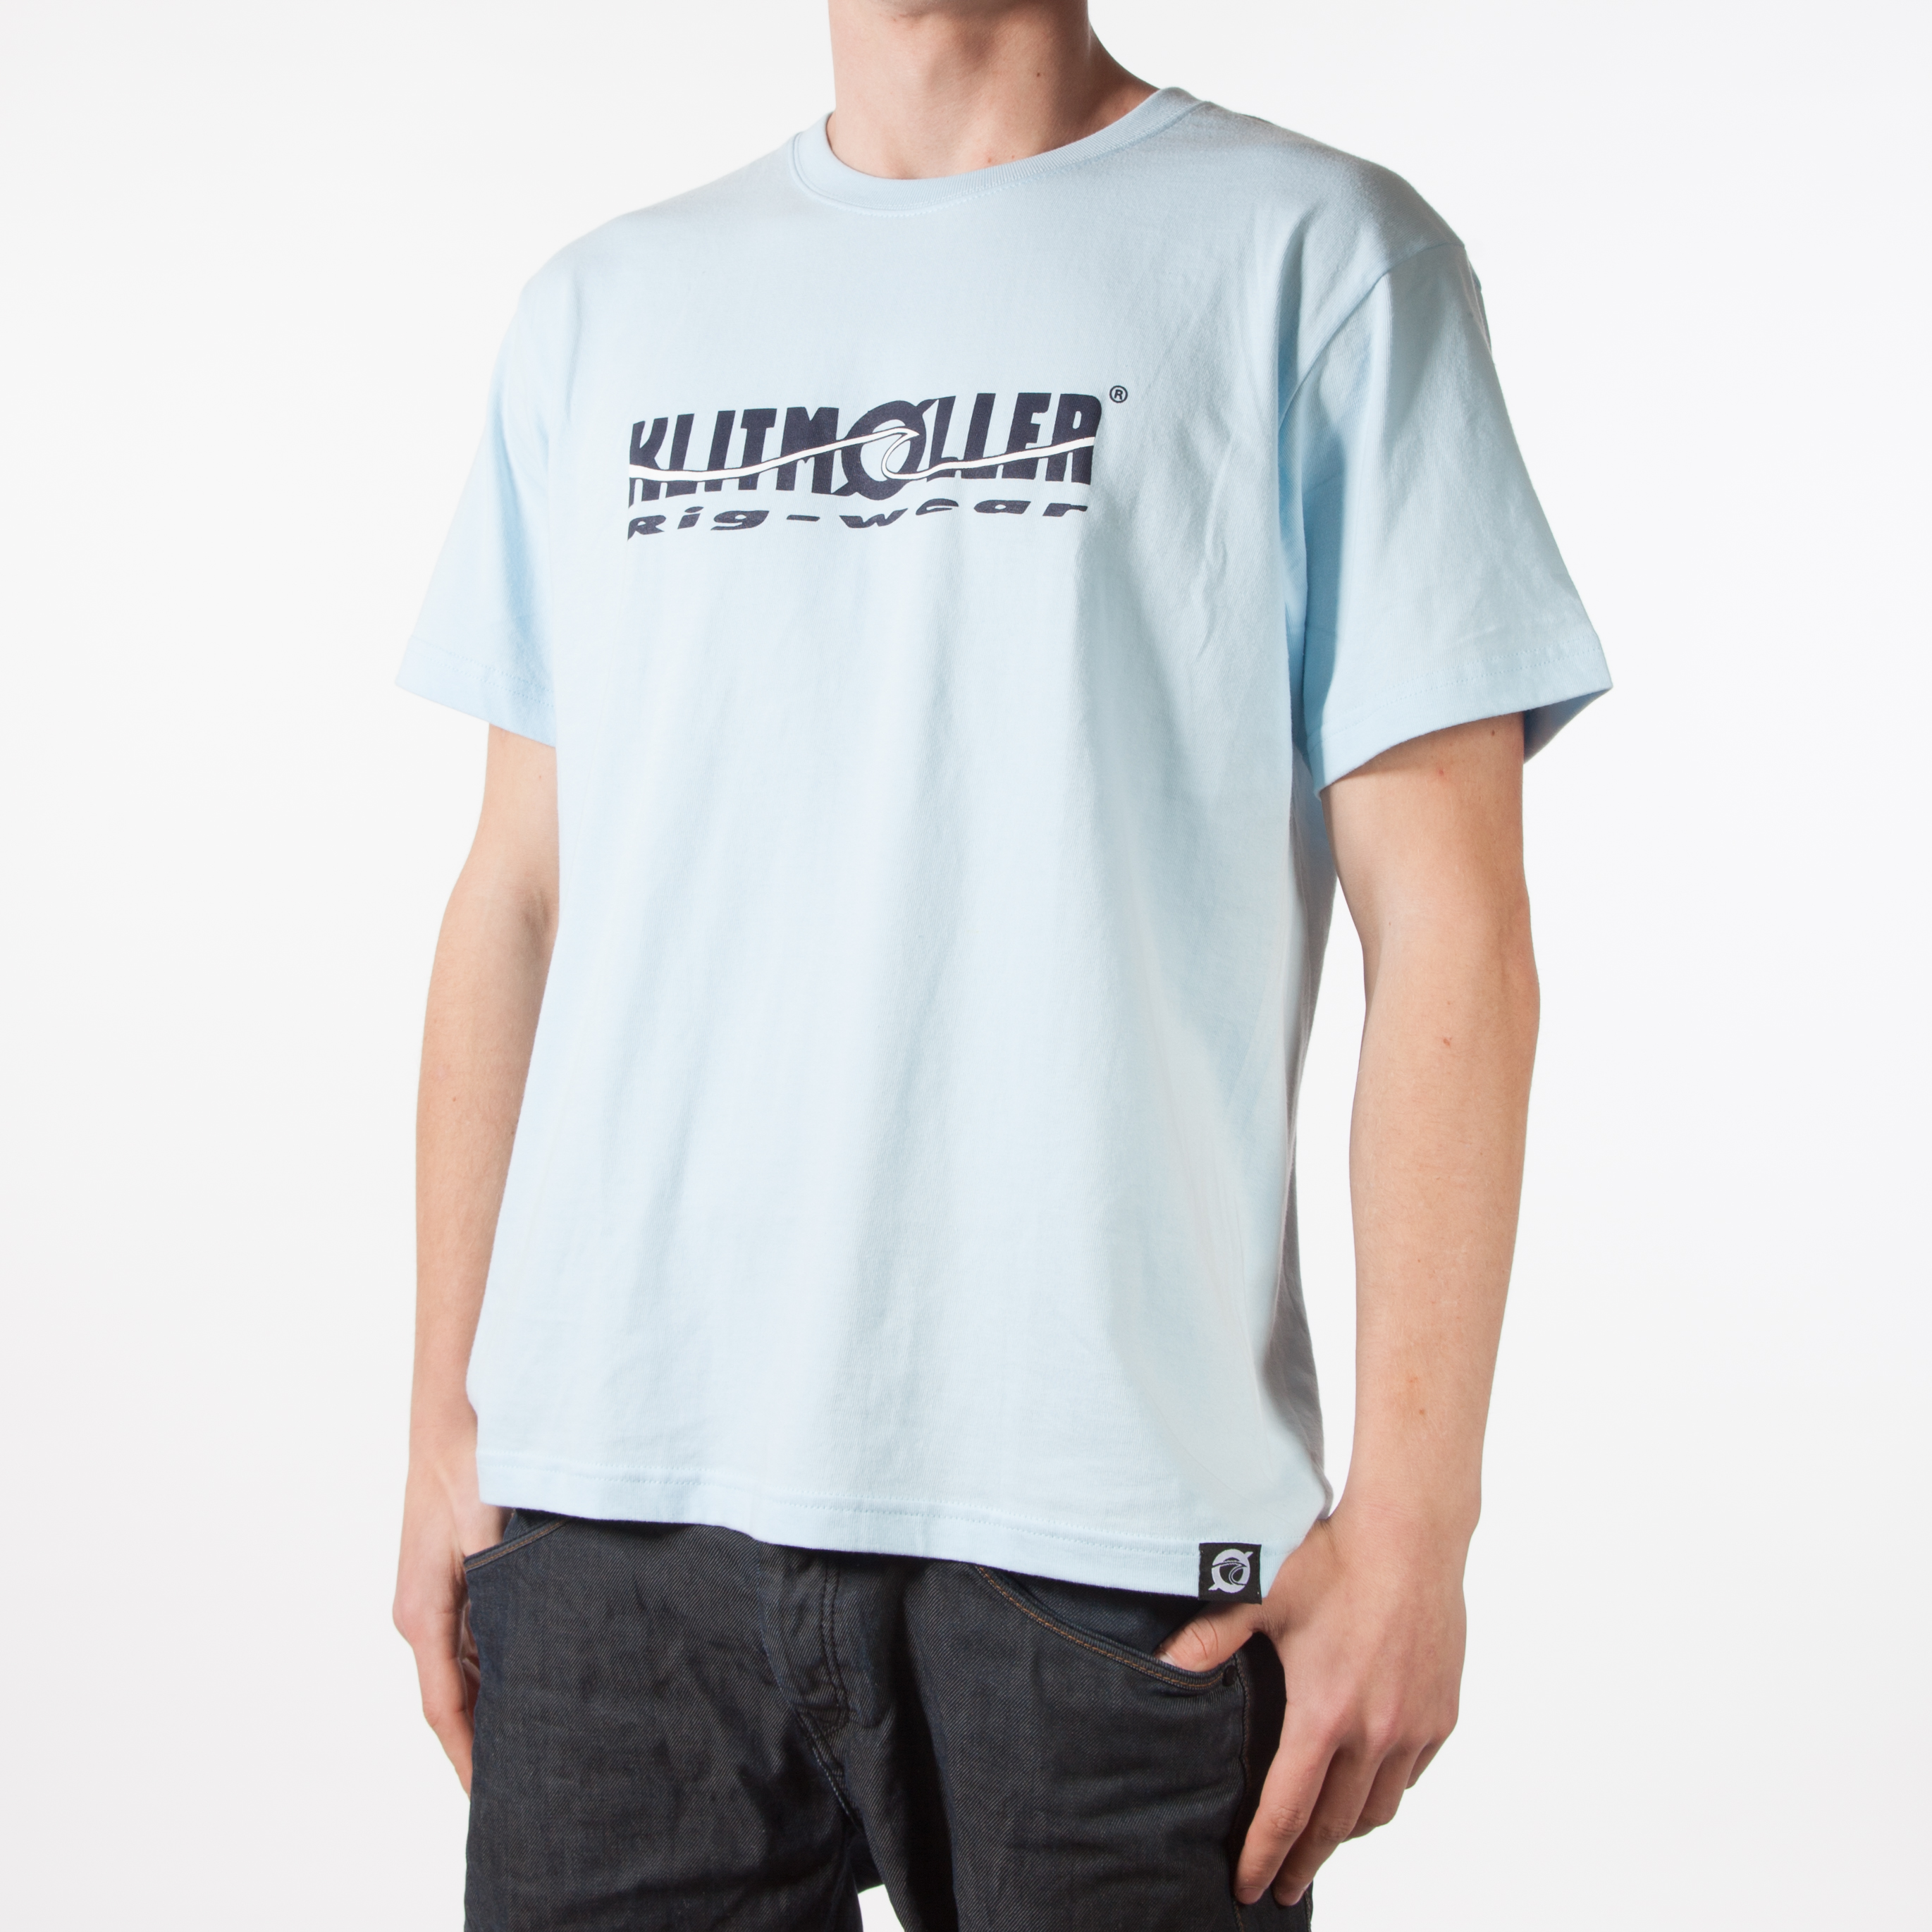 Klitmøller Rig Wear, T-shirt - Original Trademark.